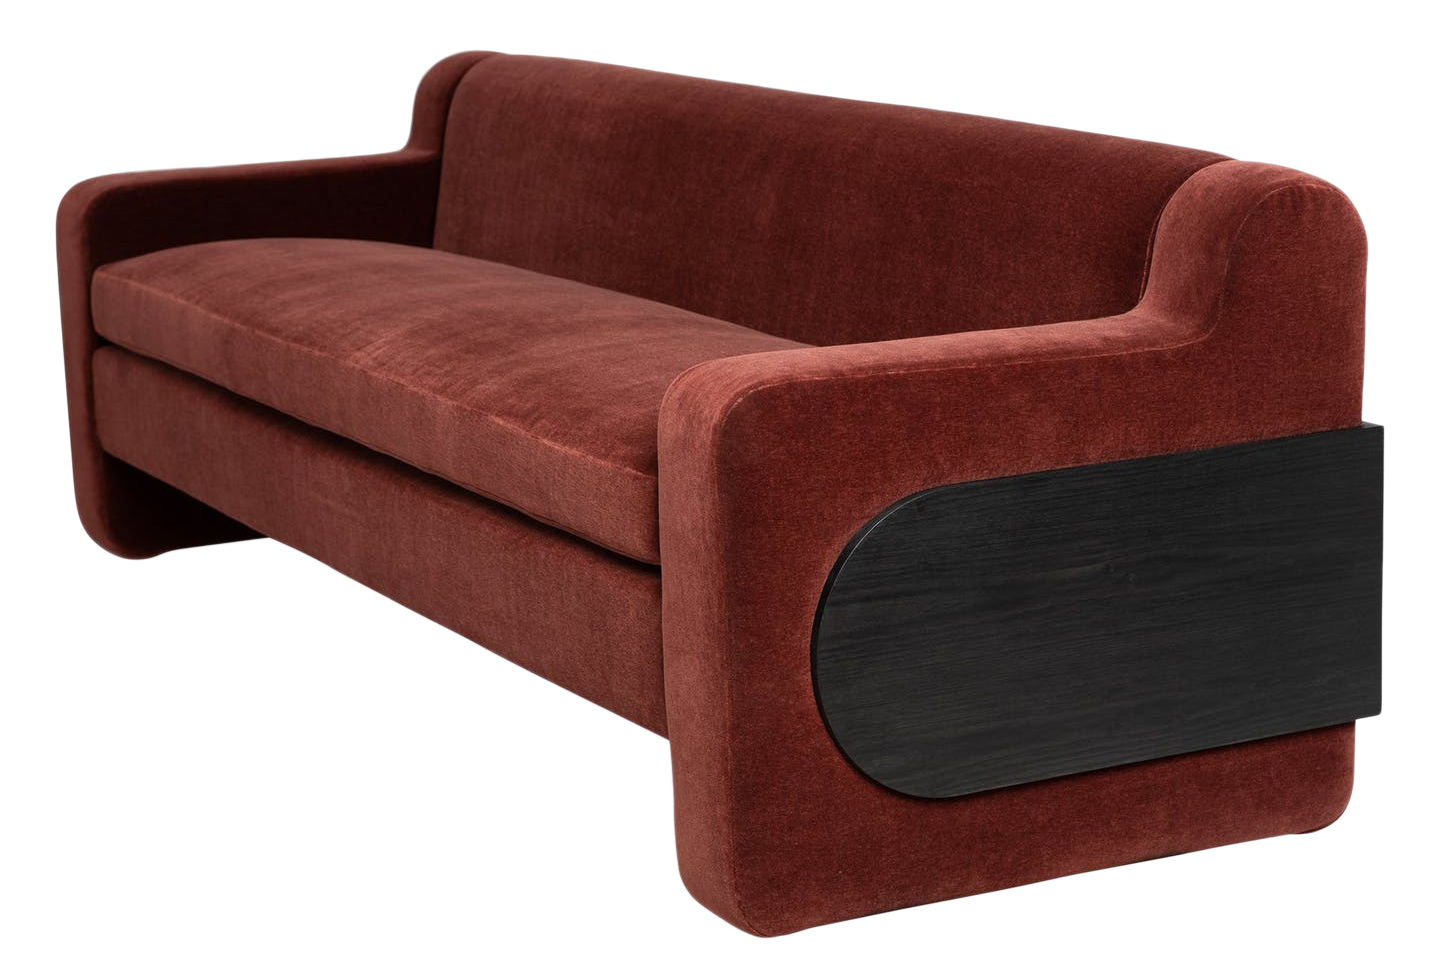 Kingsley Bullet-Wrapped Sofa. Shown inBRADLEYElements Chopin Rootbeer Mohair.Available in COM/COL (18 yds solid / 360 sf). Bullet panel shown in Ebony on Ash. Customize with any BRADLEY fabric, leather, or wood finish.Lead time:8-10 weeks.